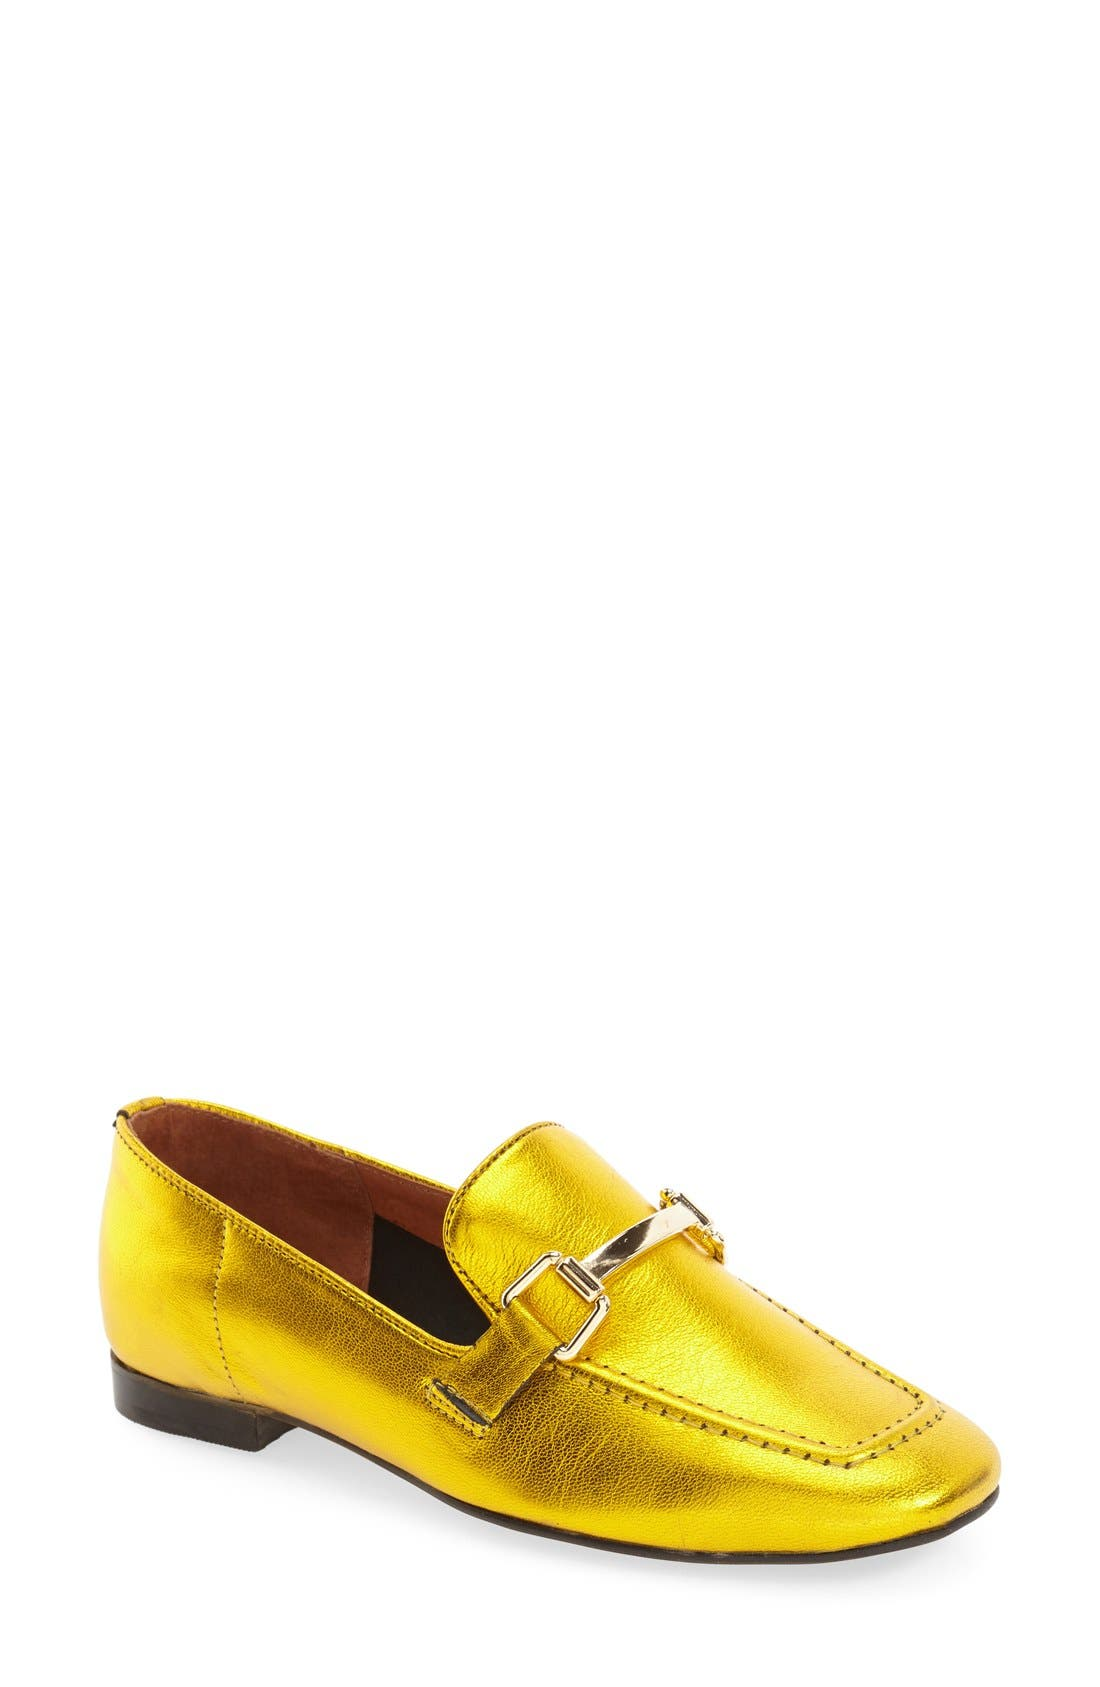 Alternate Image 1 Selected - Topshop 'Karter' Square Toe Loafer (Women)